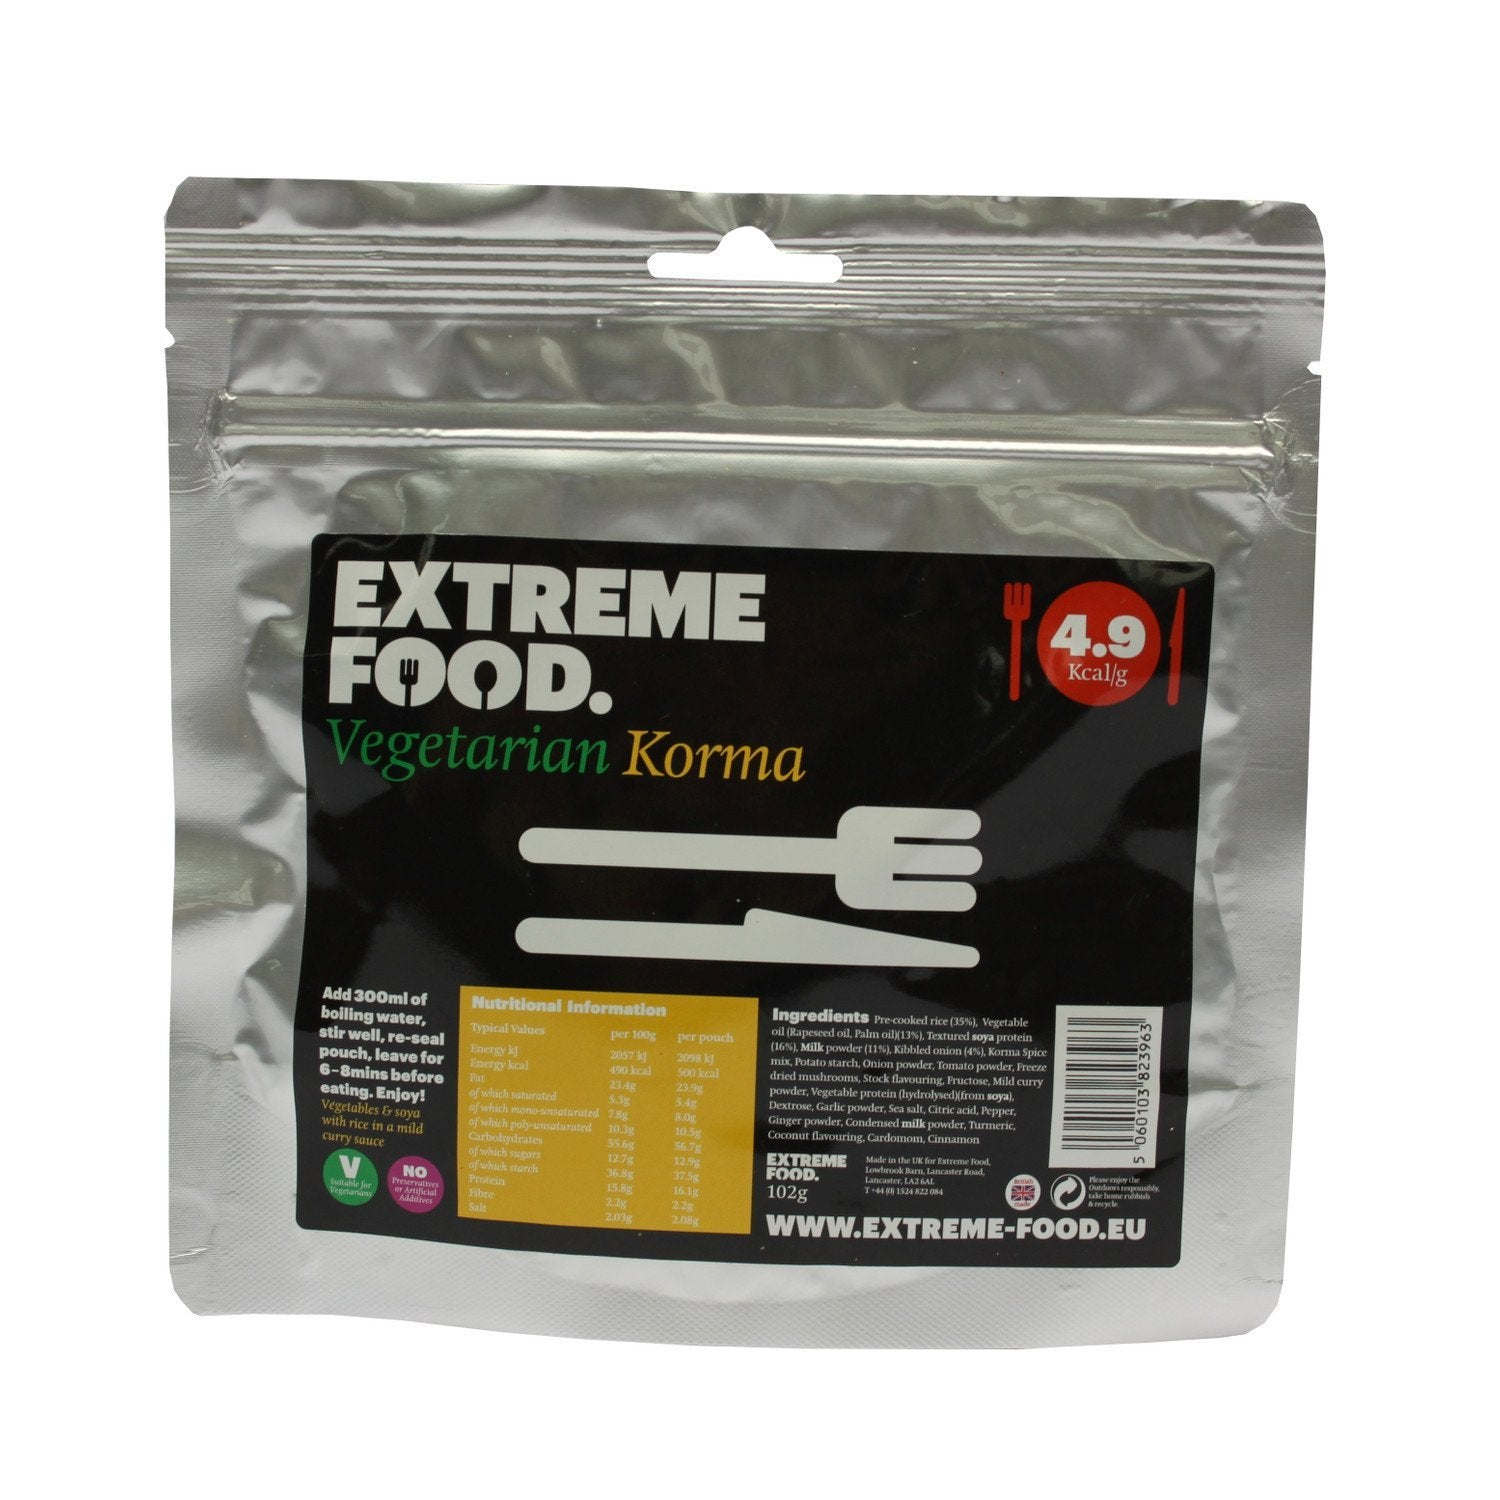 Extreme Food Vegetarian Korma, dried expedition food pack